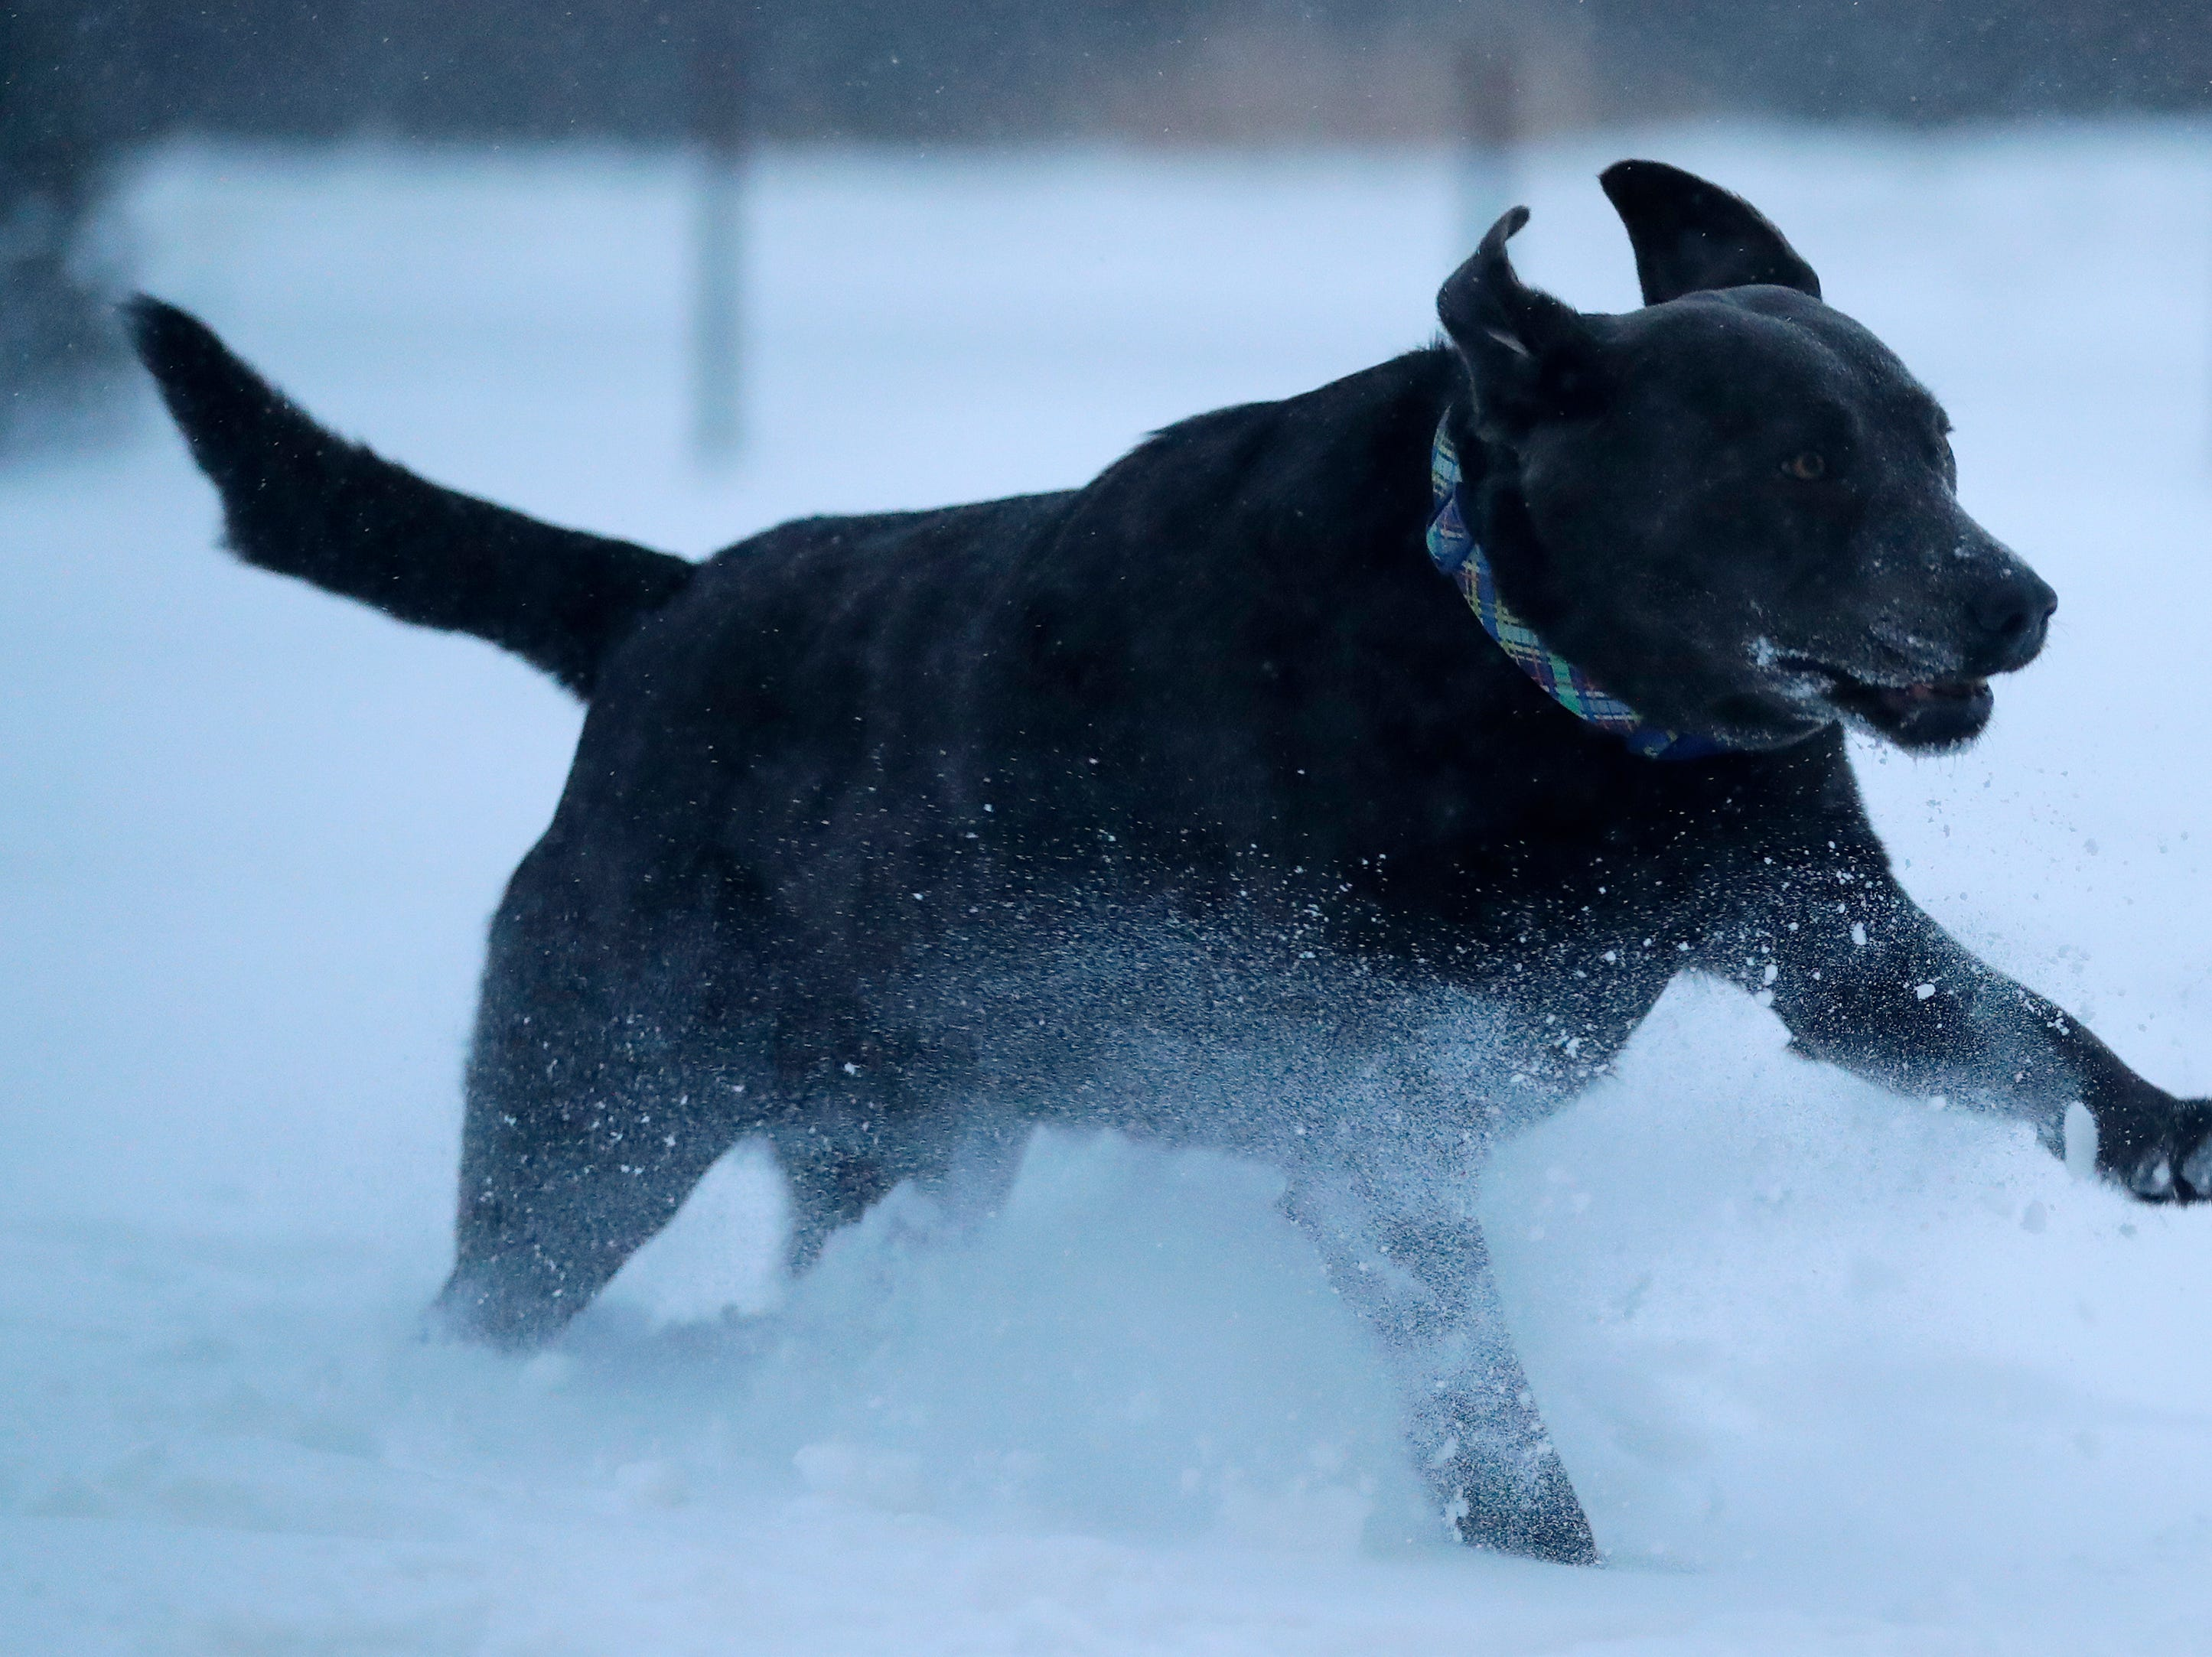 Dogs play in the snow in the outdoor area at Bark and Brew on Tuesday, Jan. 29, 2019, in Suamico, Wis.